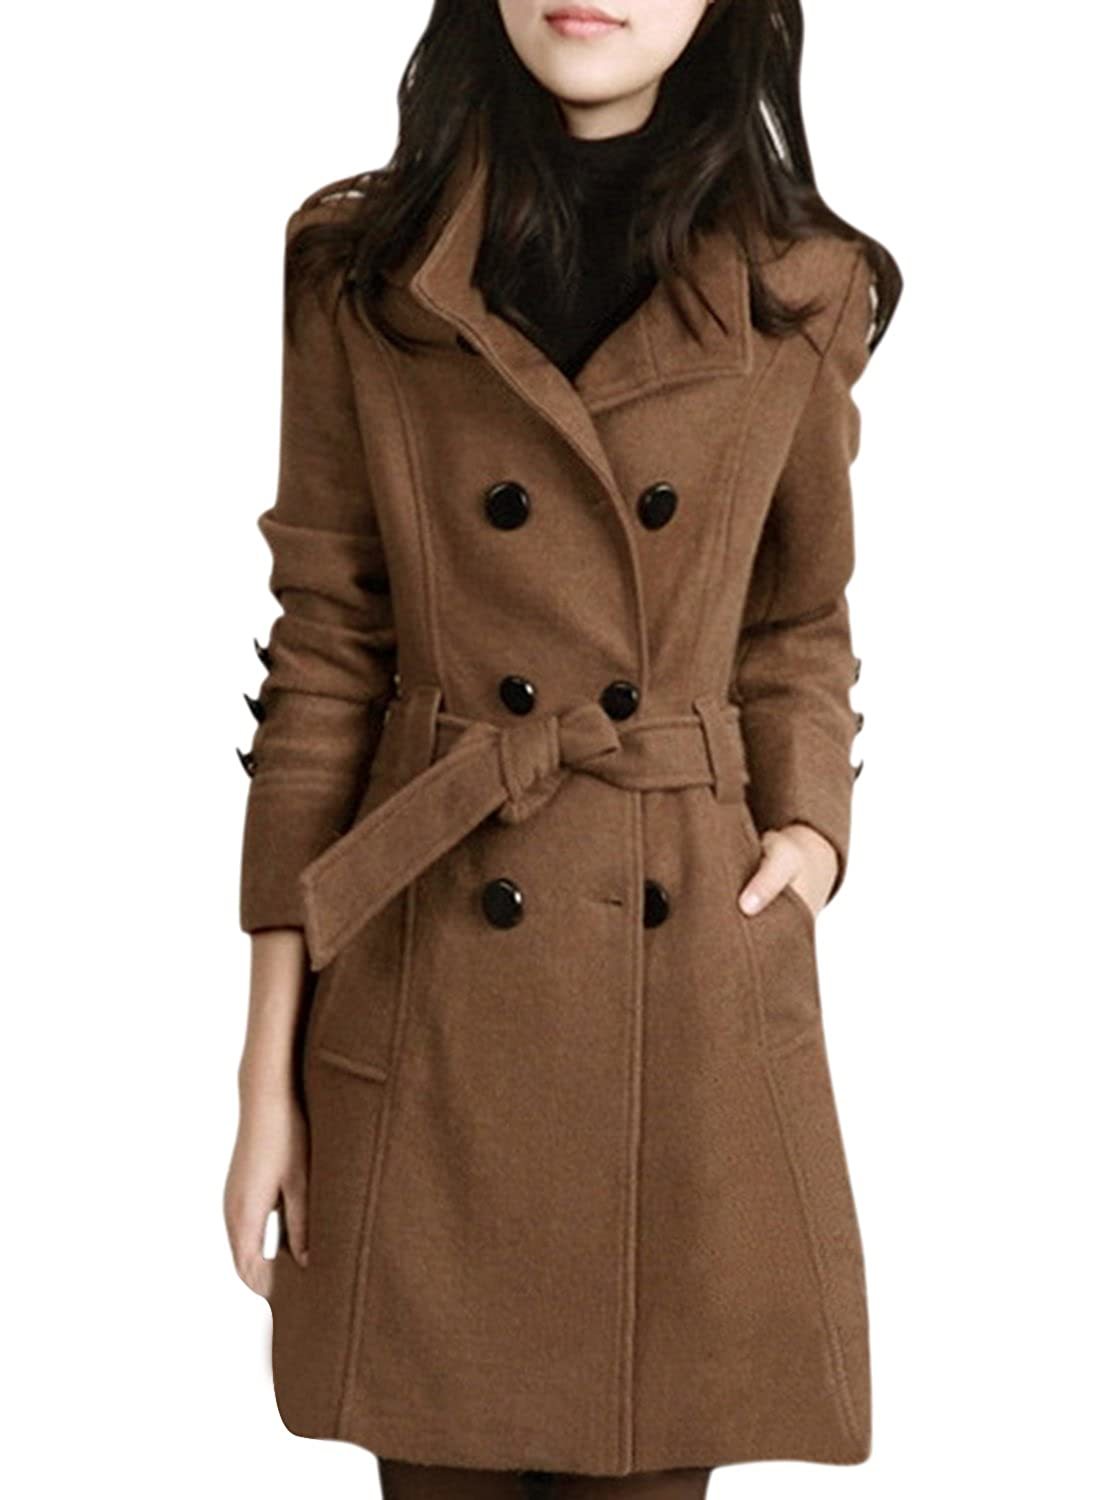 ACHICGIRL Women's Fashion Double Breasted Woolen Trench Coat with Belt